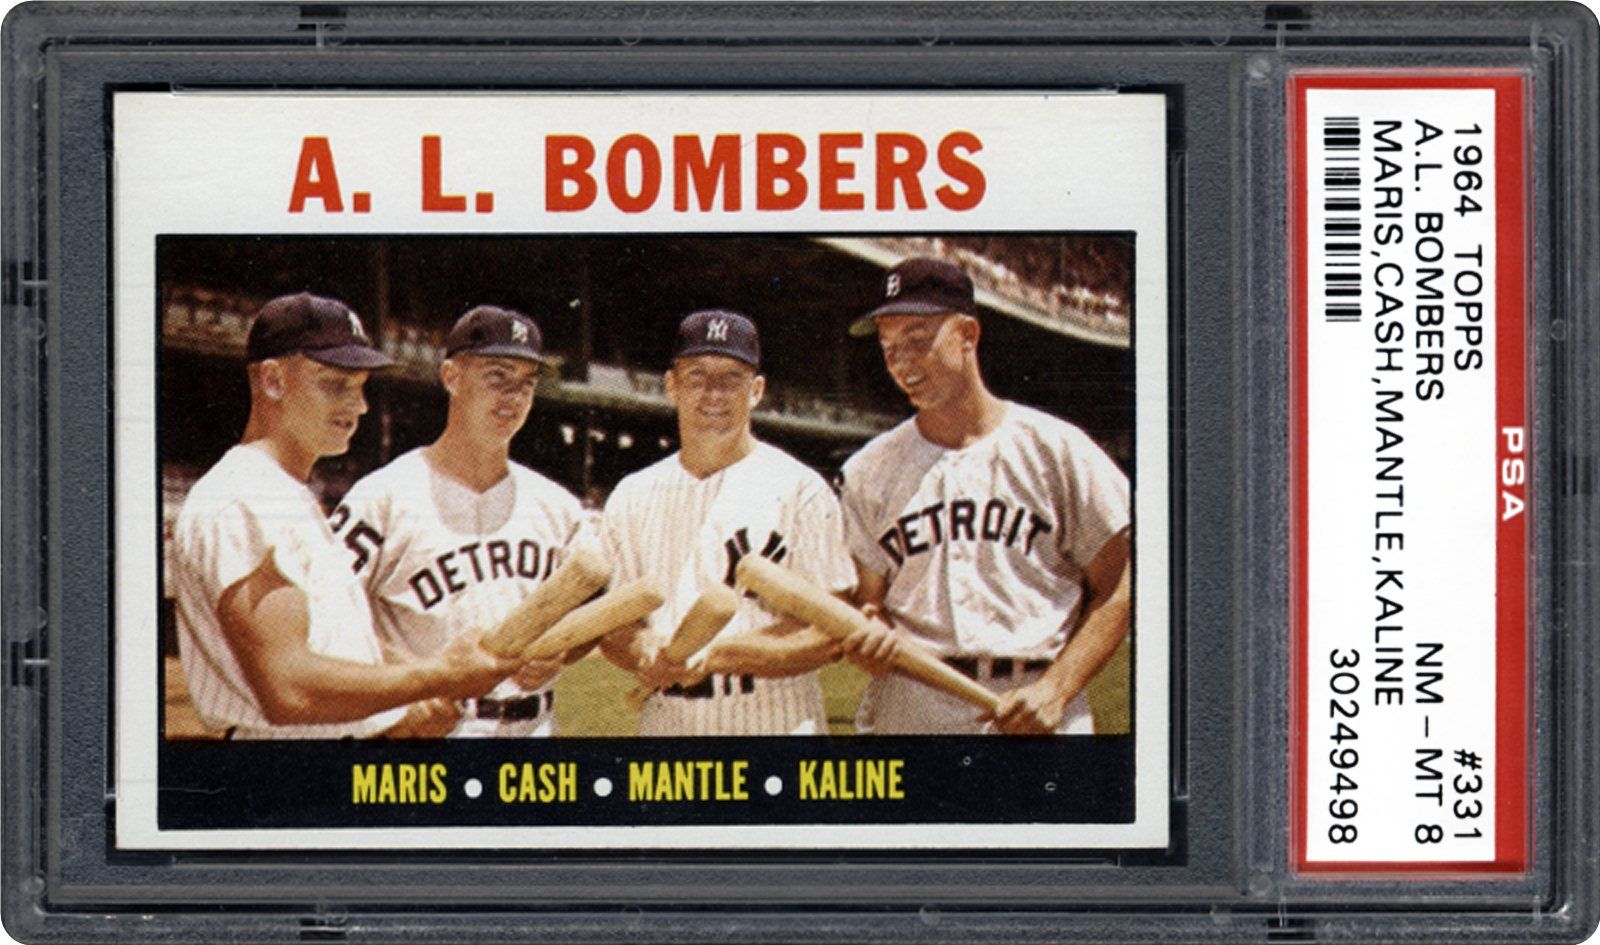 1964 Topps Al Bombers Roger Marisnorm Cashmickey Mantleal